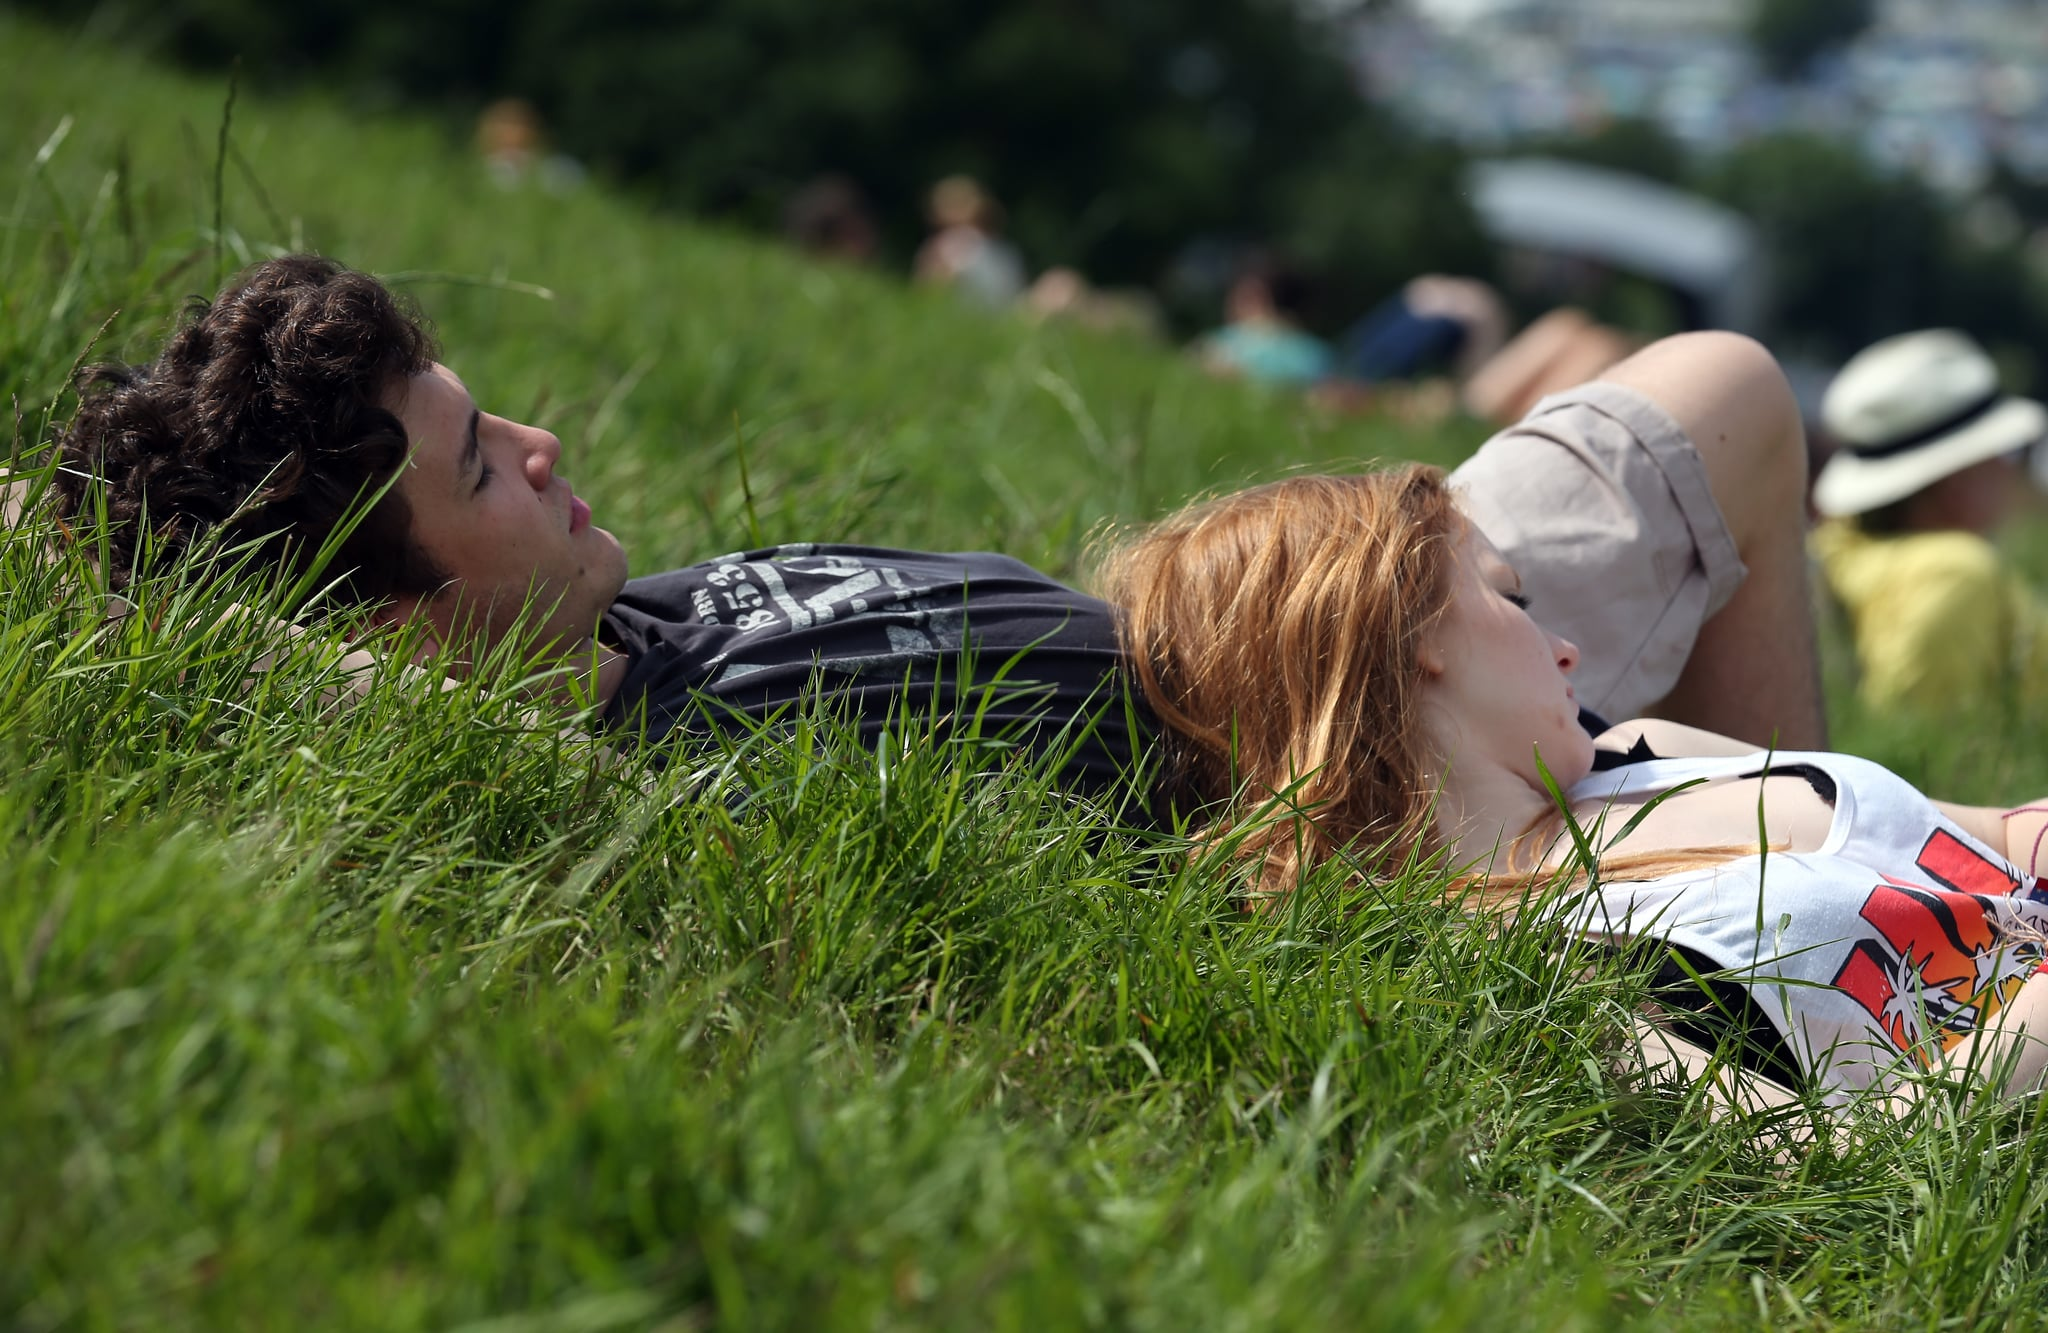 A pair rested in the grass at Glostonbury Festival in the UK.